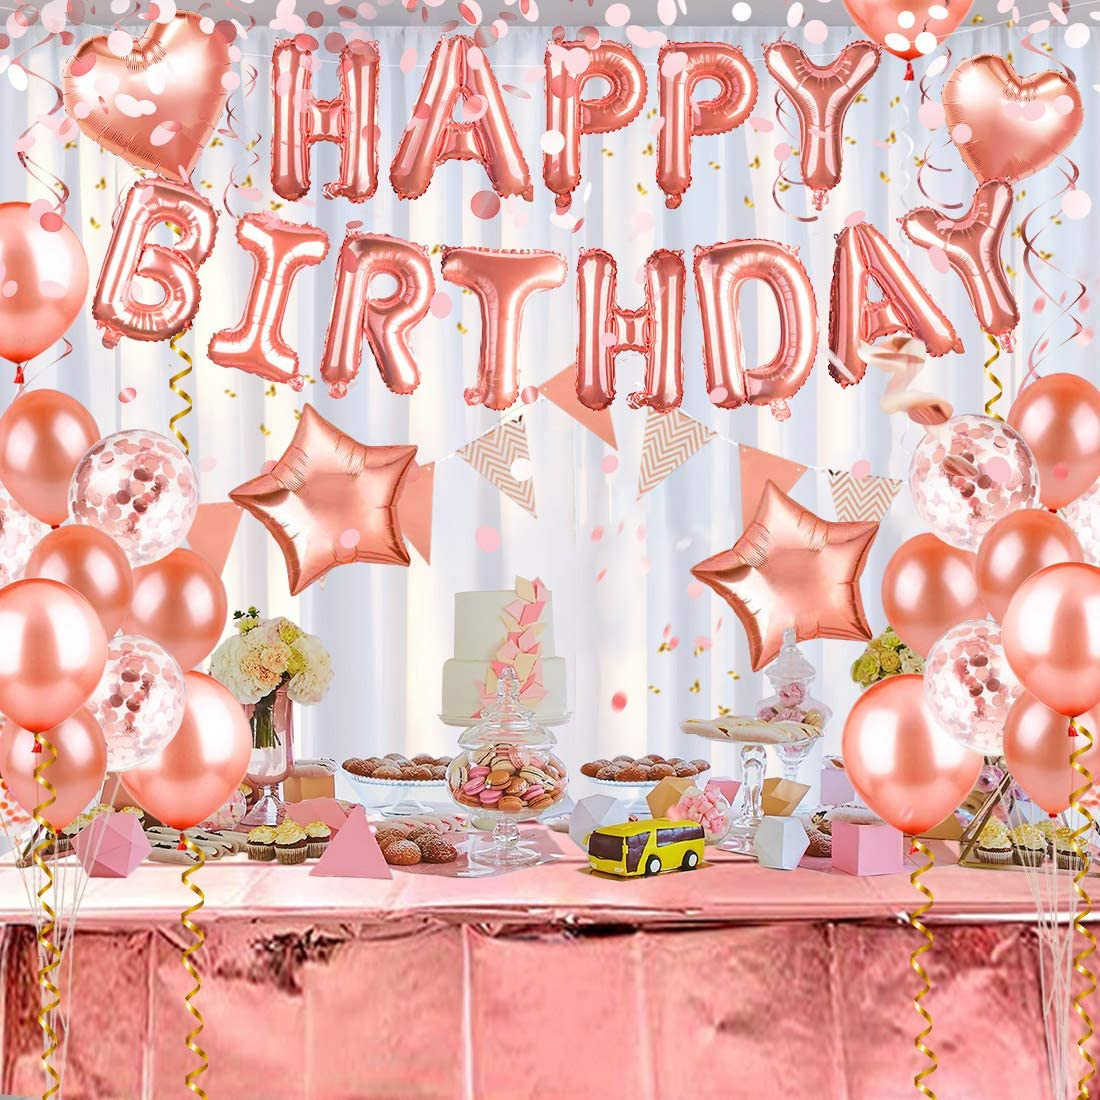 HAYOSNFO Birthday Balloons Party Decorations, Happy Birthday Banner Decor, Pink and Gold Ballons for Birthday Party Supplies Set 60pcs